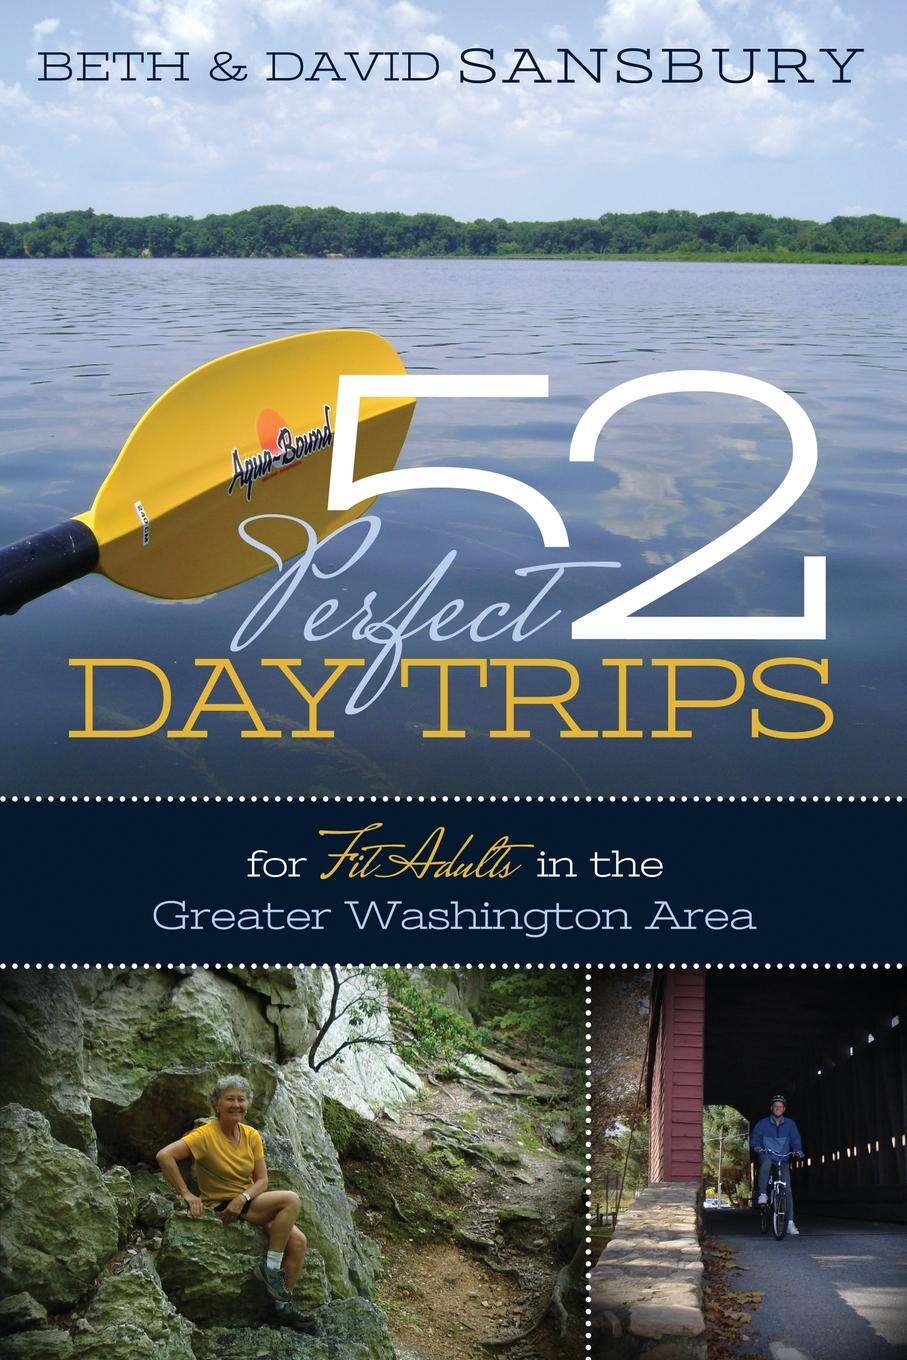 Beth Sansbury, David Sansbury 52 Perfect Day Trips for Fit Adults in the Greater Washington Area